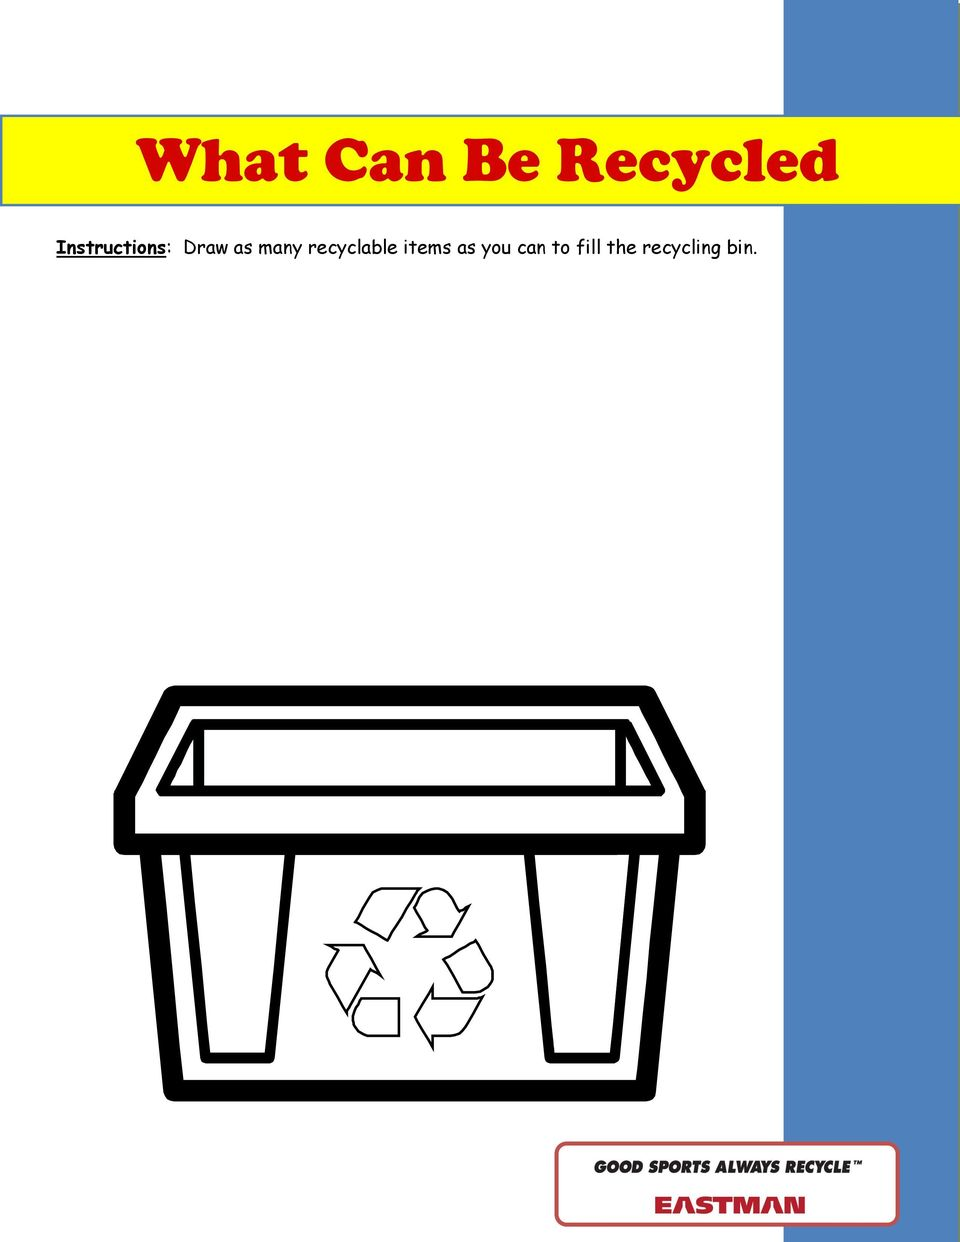 many recyclable items as